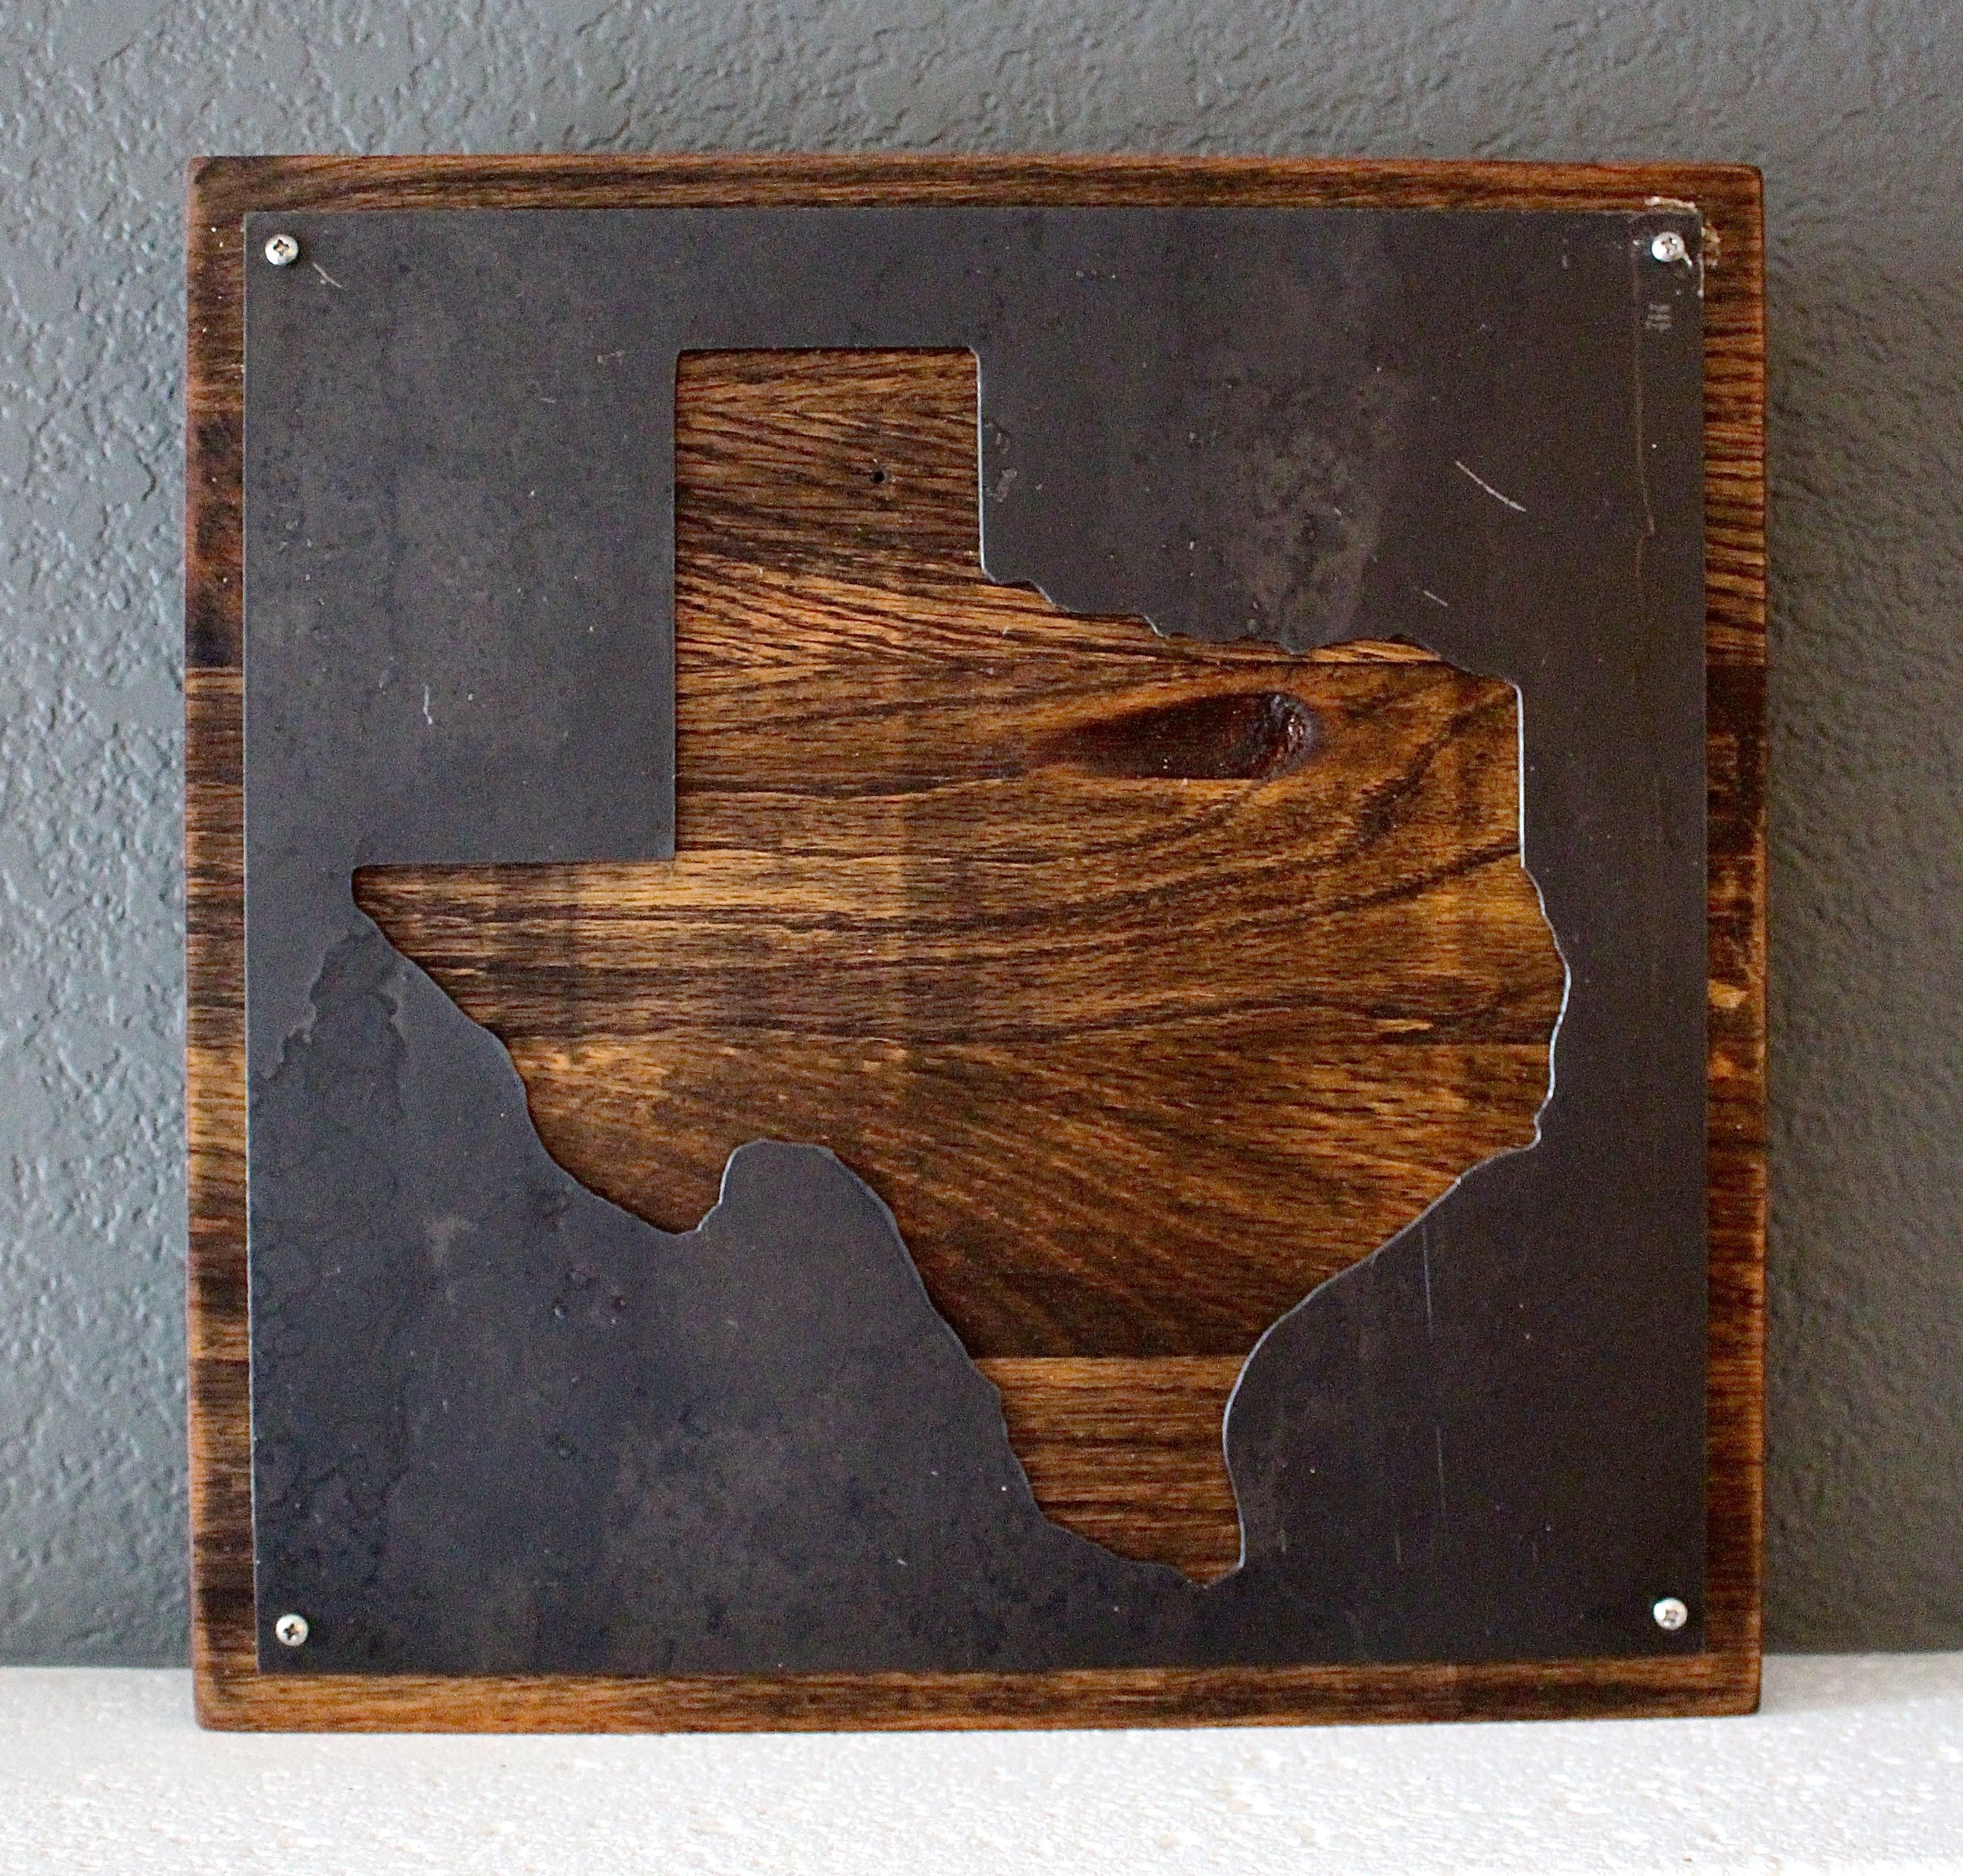 Buy a Custom Metal Texas Wall Decor, made to order from callum